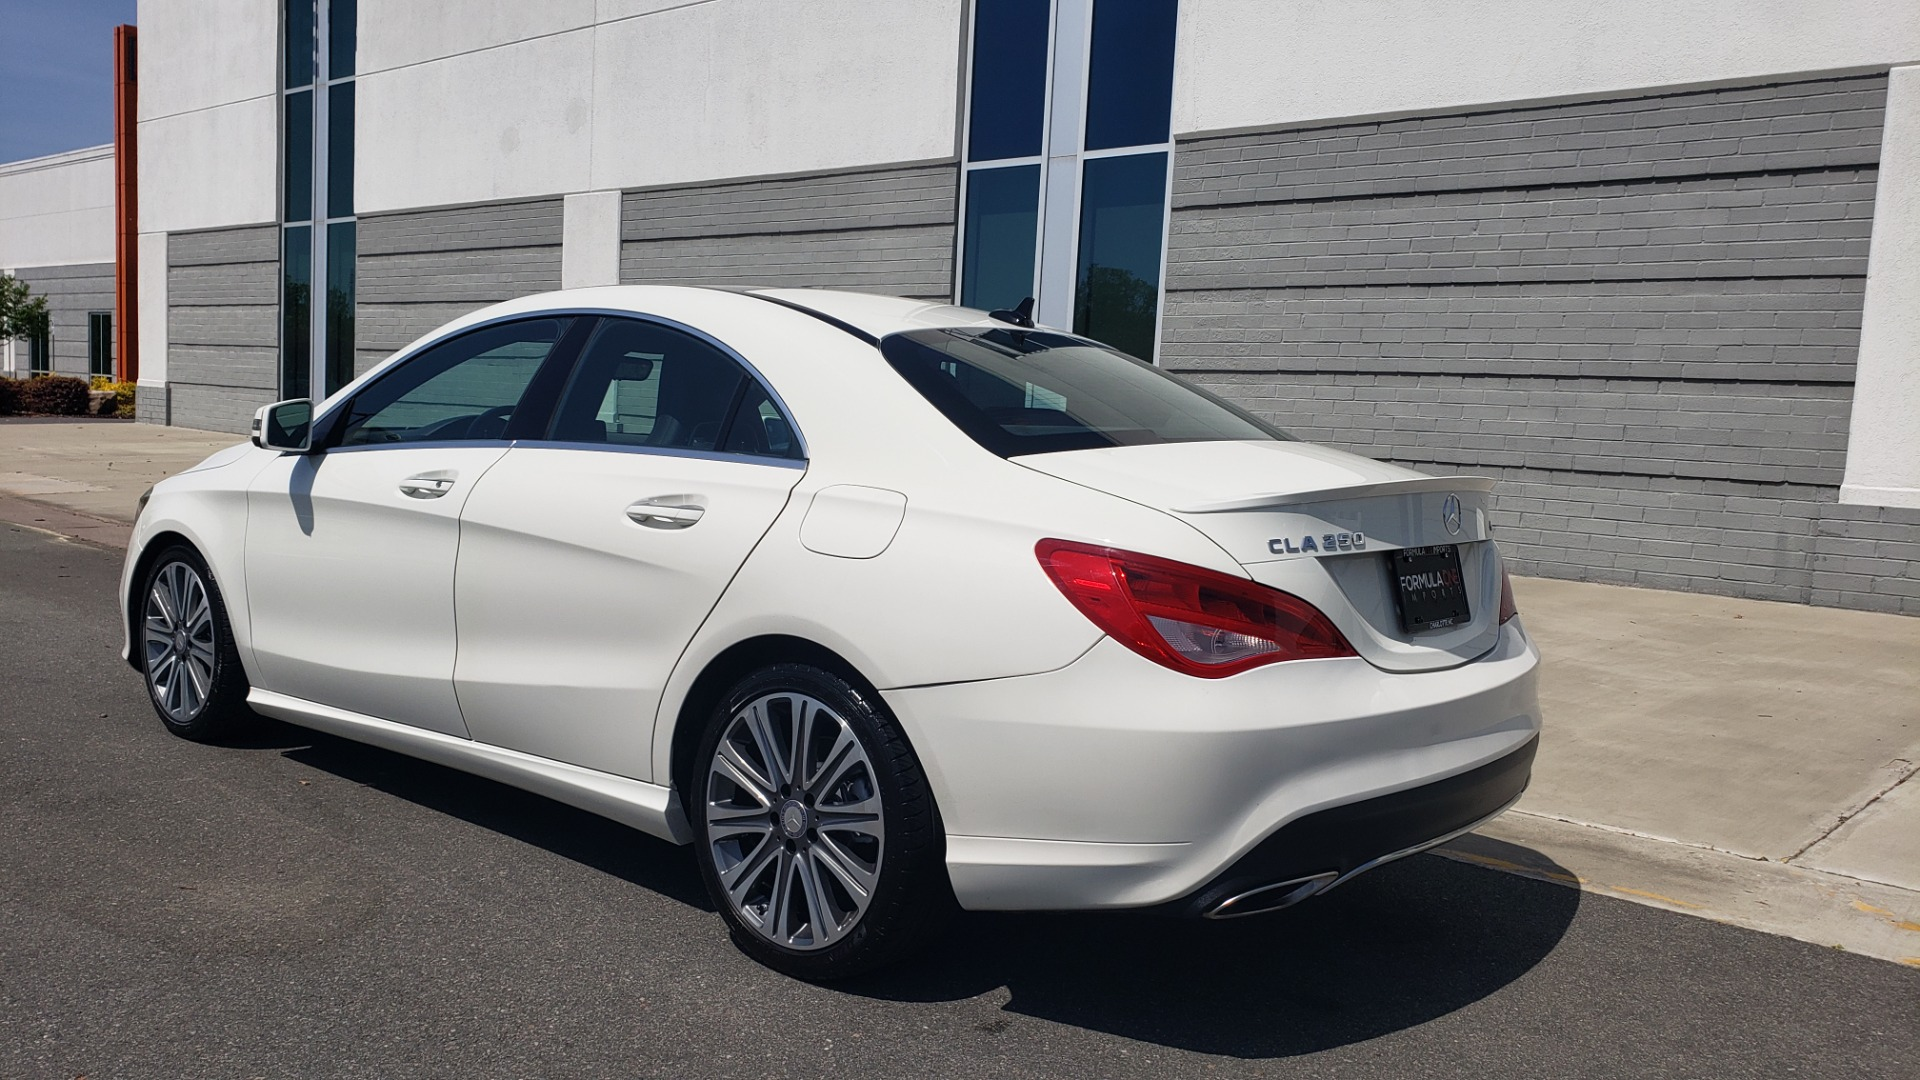 Used 2018 Mercedes-Benz CLA 250 4MATIC PREMIUM / PANO-ROOF / CONV PKG / APPLE / REARVIEW for sale $25,395 at Formula Imports in Charlotte NC 28227 5